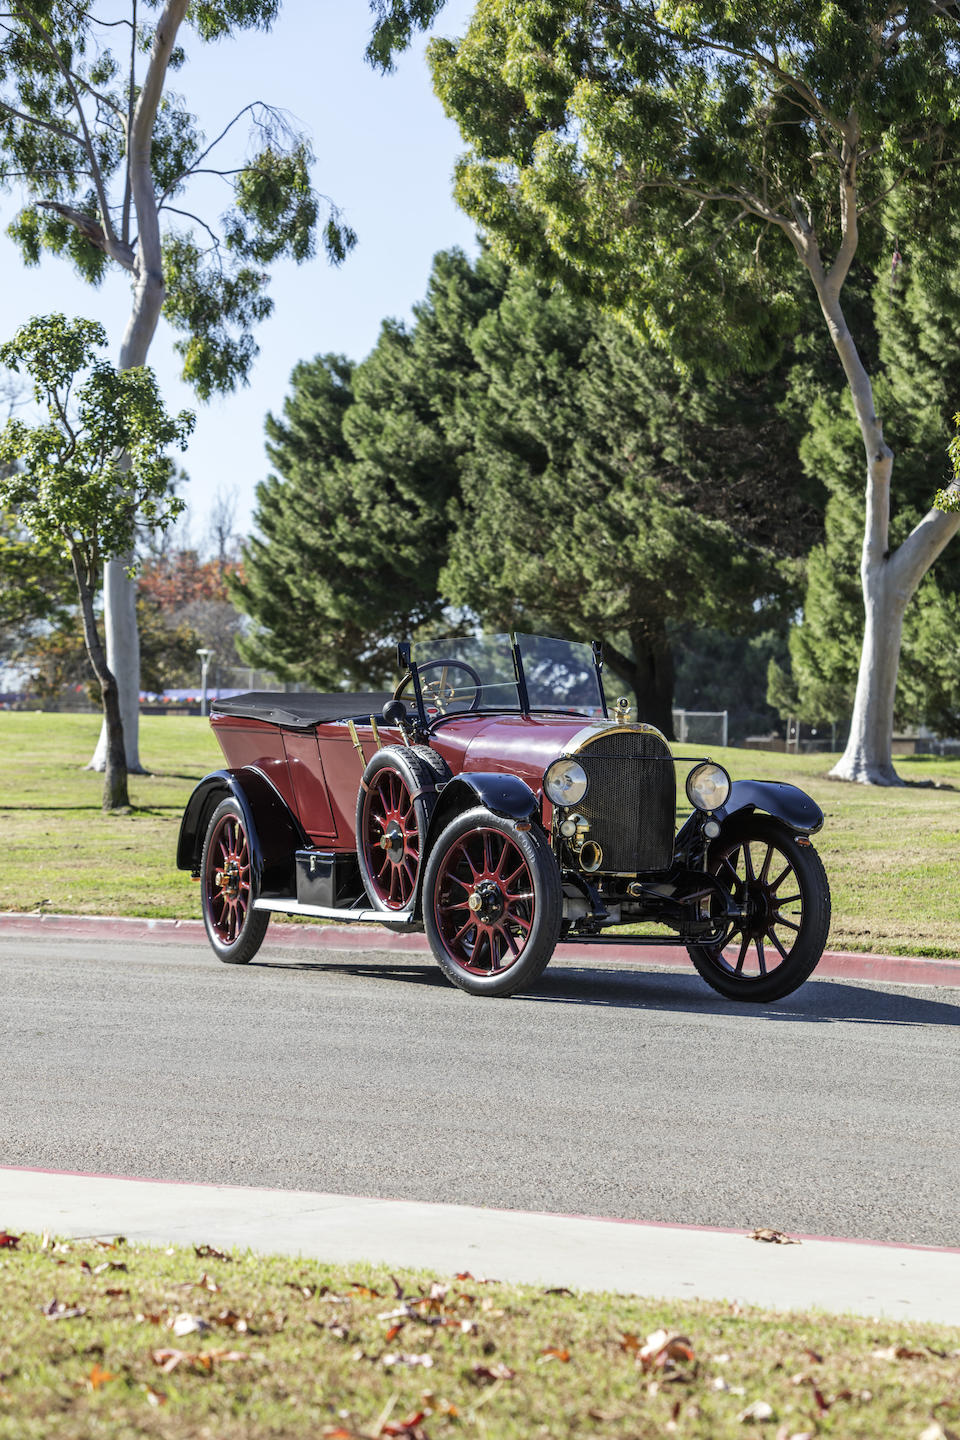 <b>1918 Opel 14/38 PS Double-Phaeton</b><br />Chassis no. 13231<br />Engine no. 43695<br />Body no. 19784